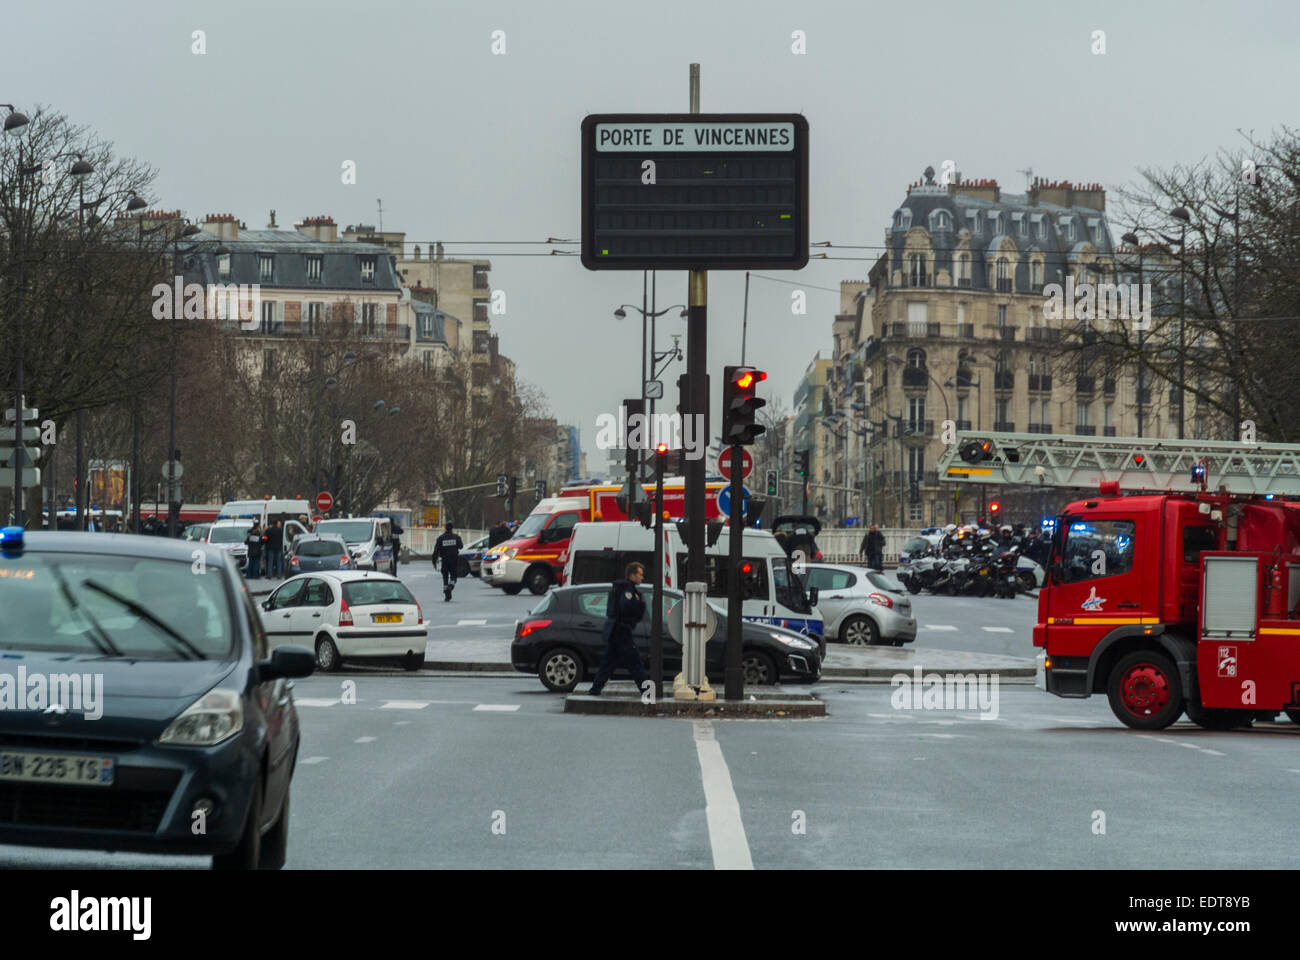 Paris  France  Views  Porte de Vincennes  Street Scene  After Stock     Views  Porte de Vincennes  Street Scene  After Terrorist Shooting  at a  local kosher supermarket  Sign at Roundabout